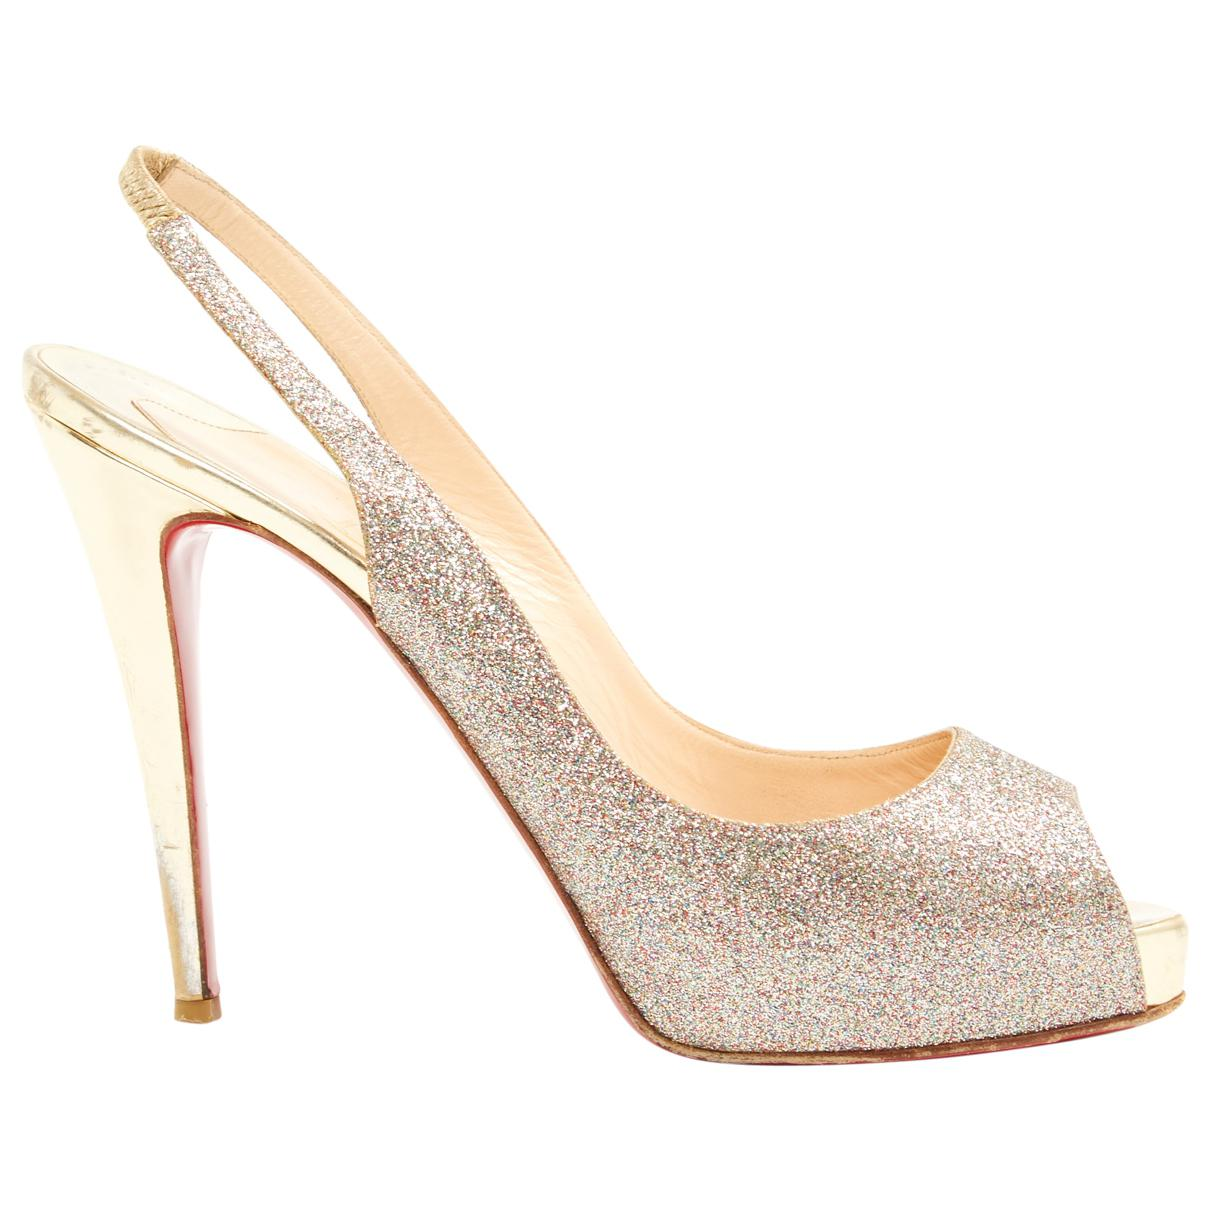 9ebb12d3f539 Lyst - Christian Louboutin Pre-owned Private Number Glitter Heels in ...